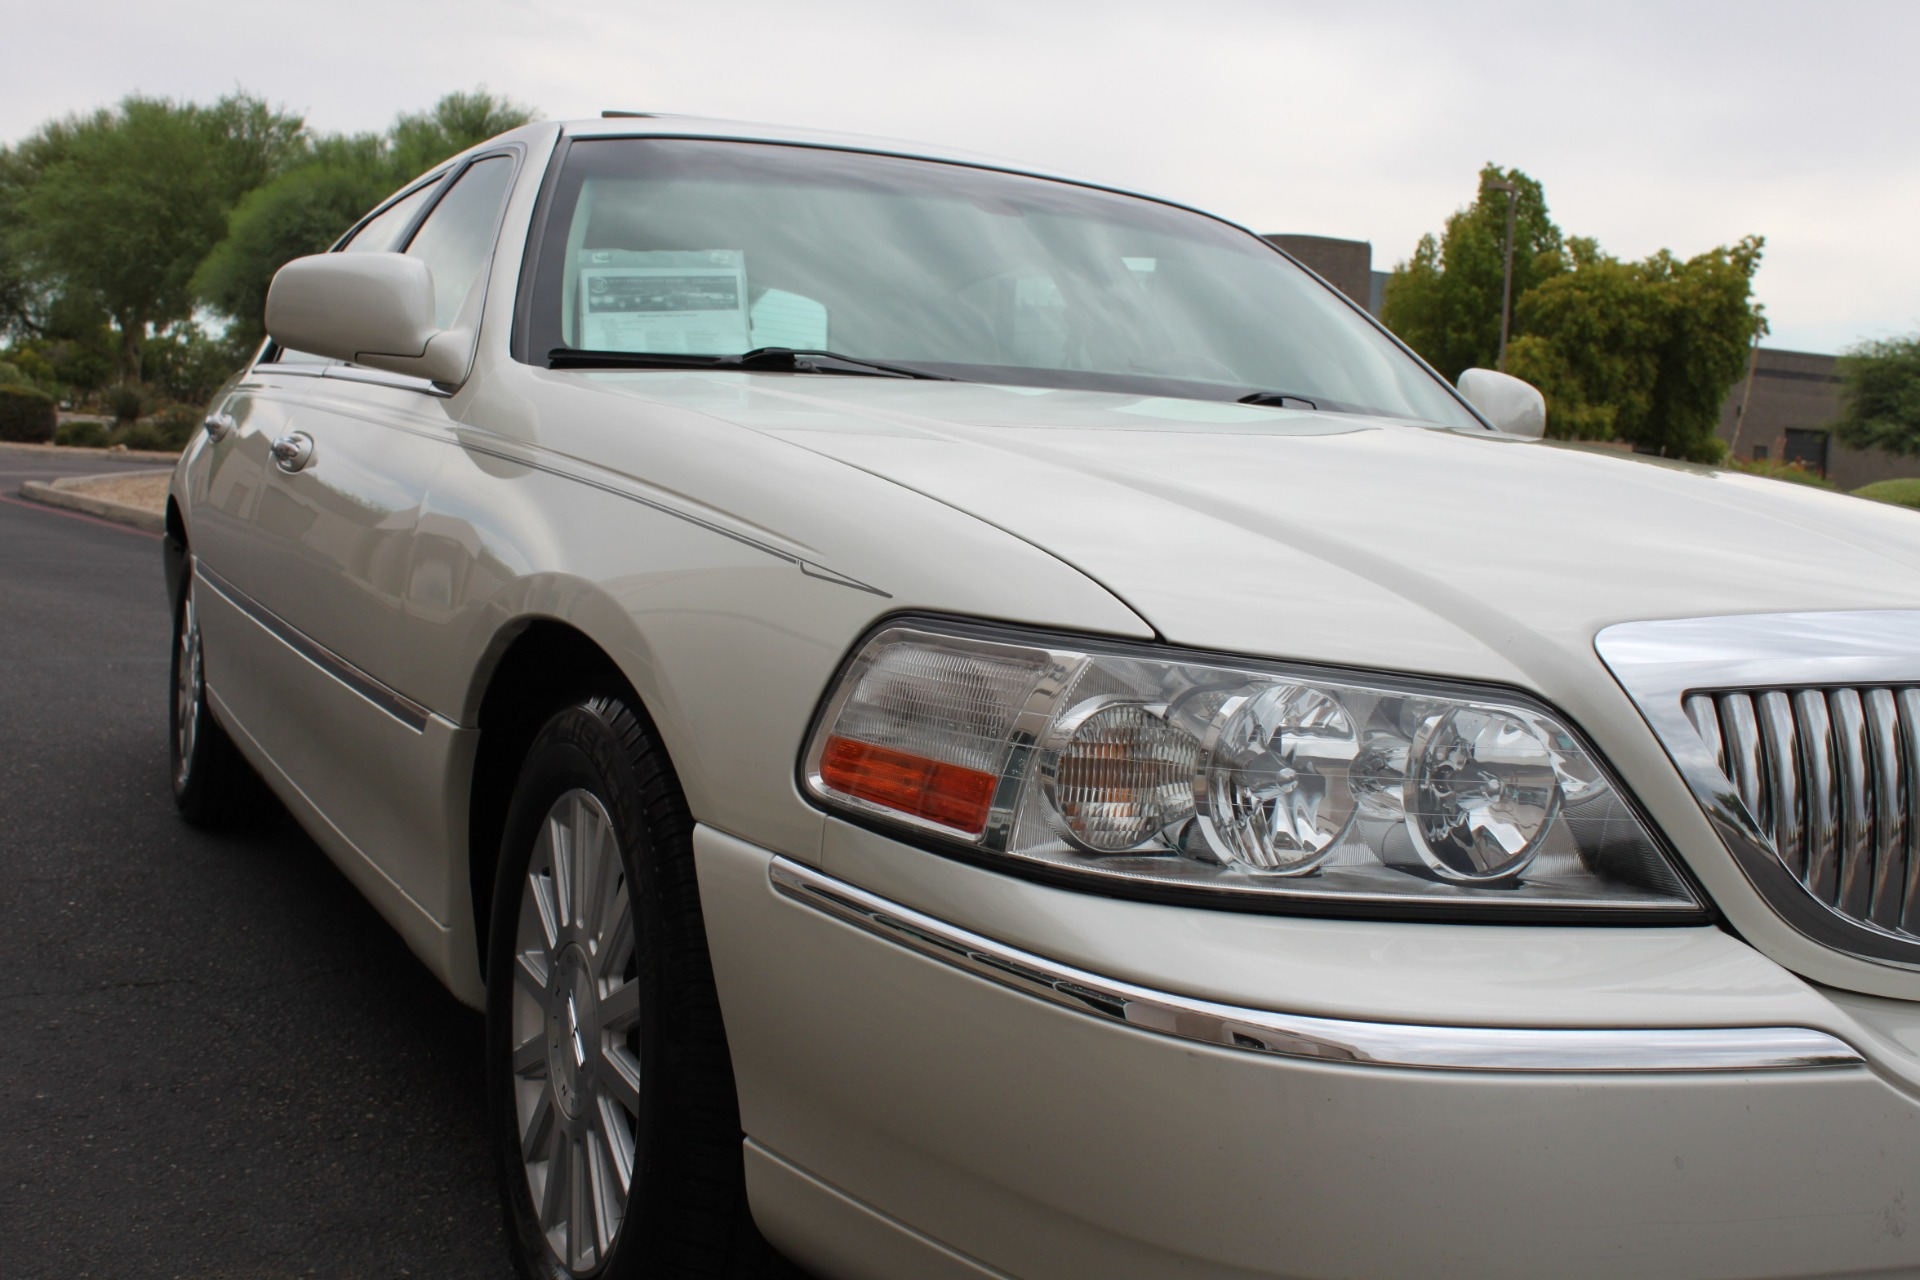 Used-2004-Lincoln-Town-Car-Ultimate-Lexus